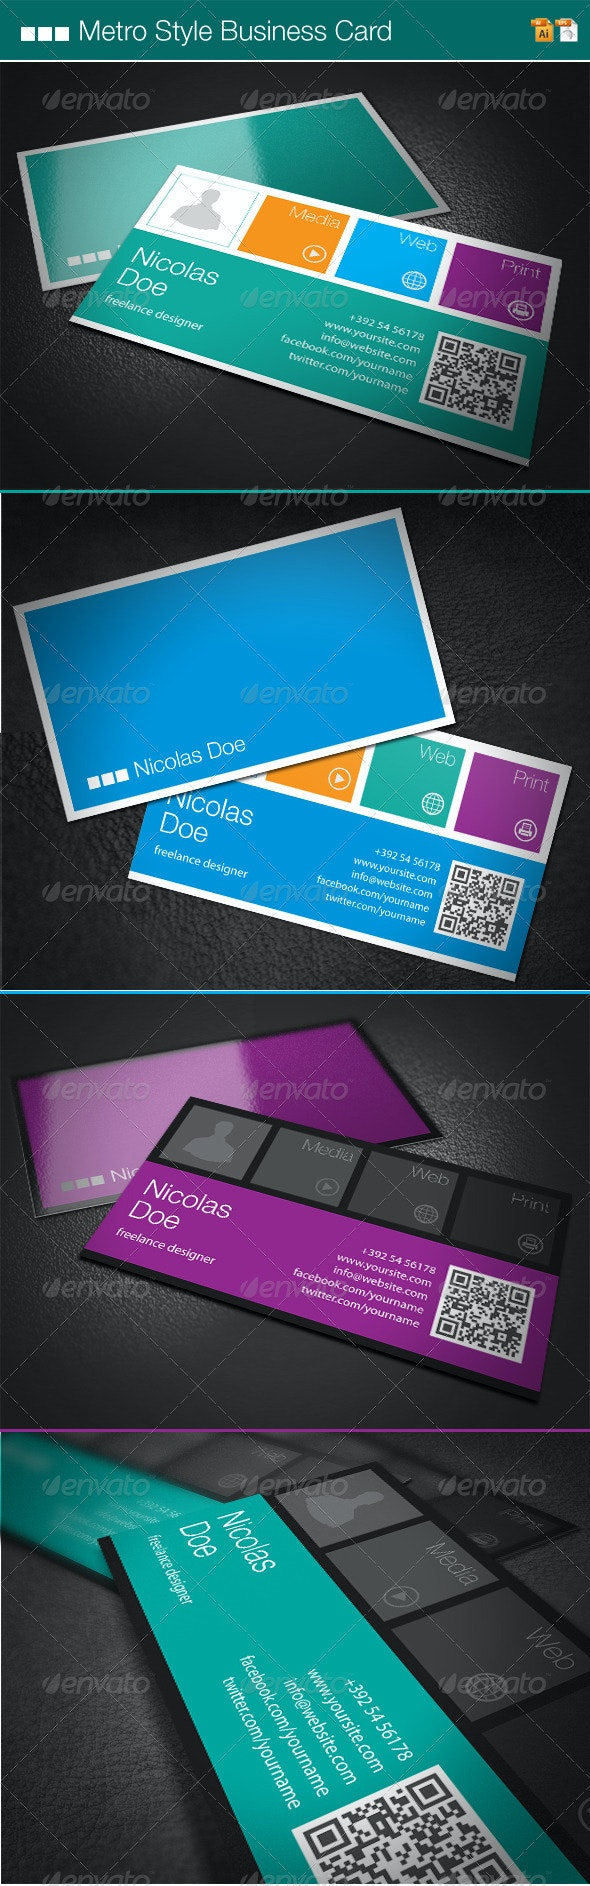 Metro Style Business Card - Corporate Business Cards